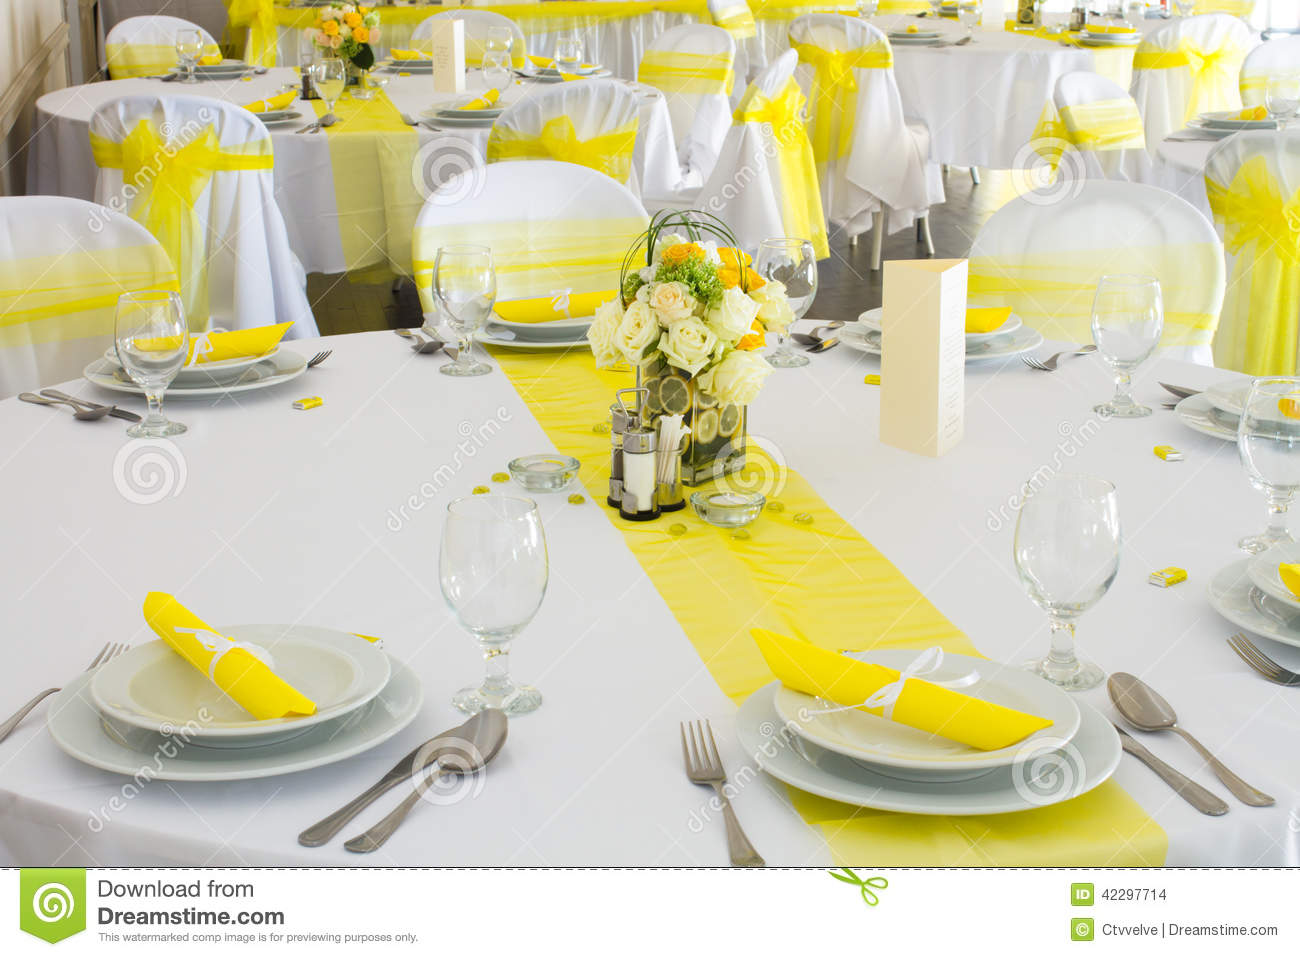 outdoor high table and chair set mesh folding wedding decoration stock photo - image: 42297714